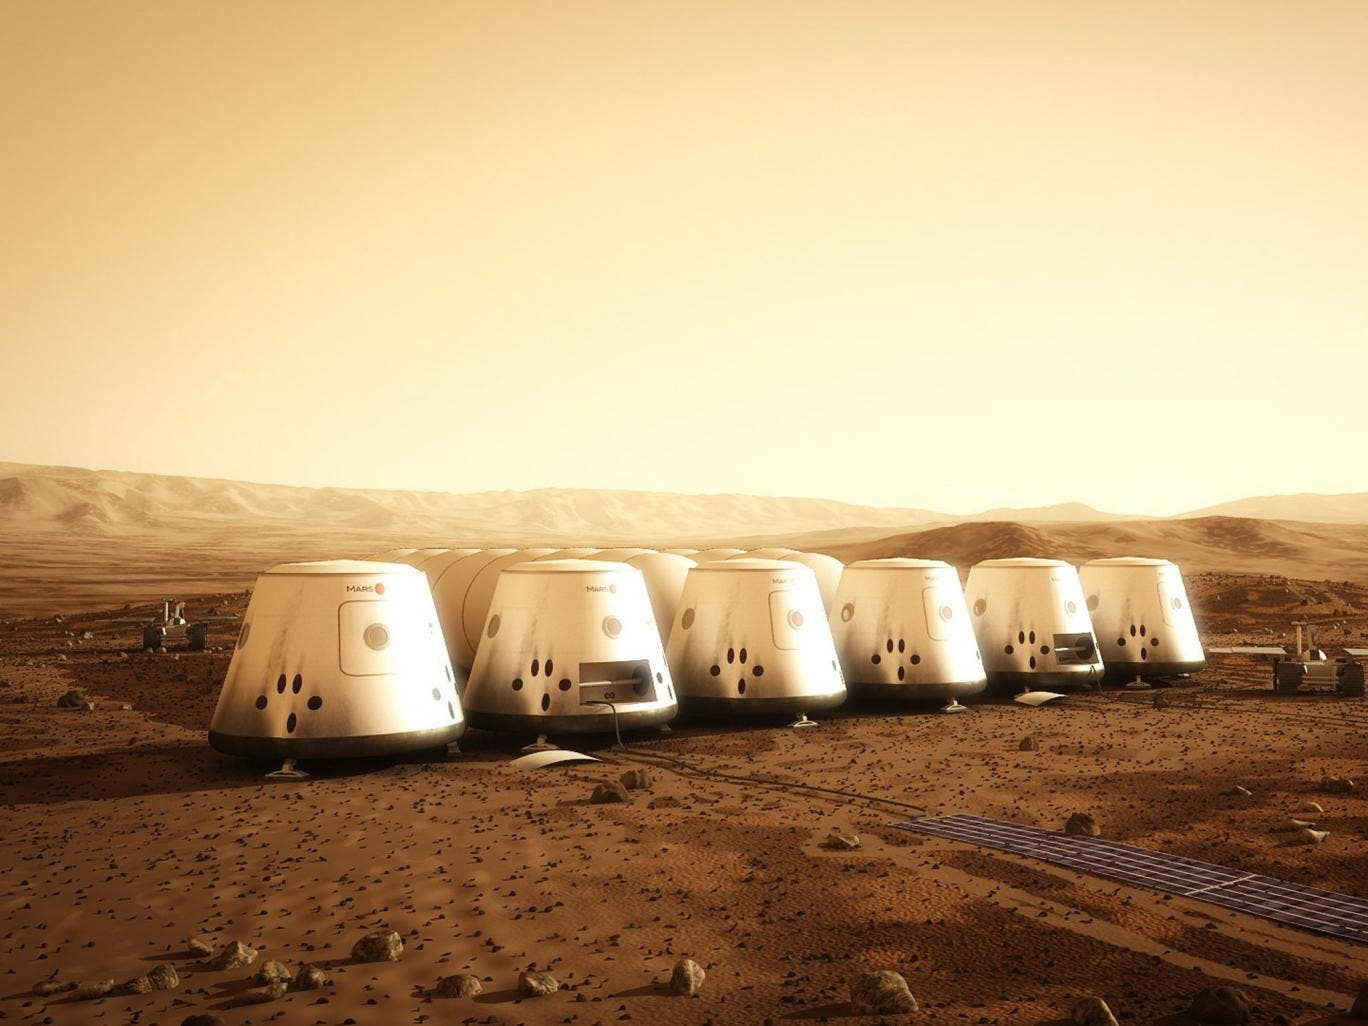 Artist's rendition of a settlement on Mars